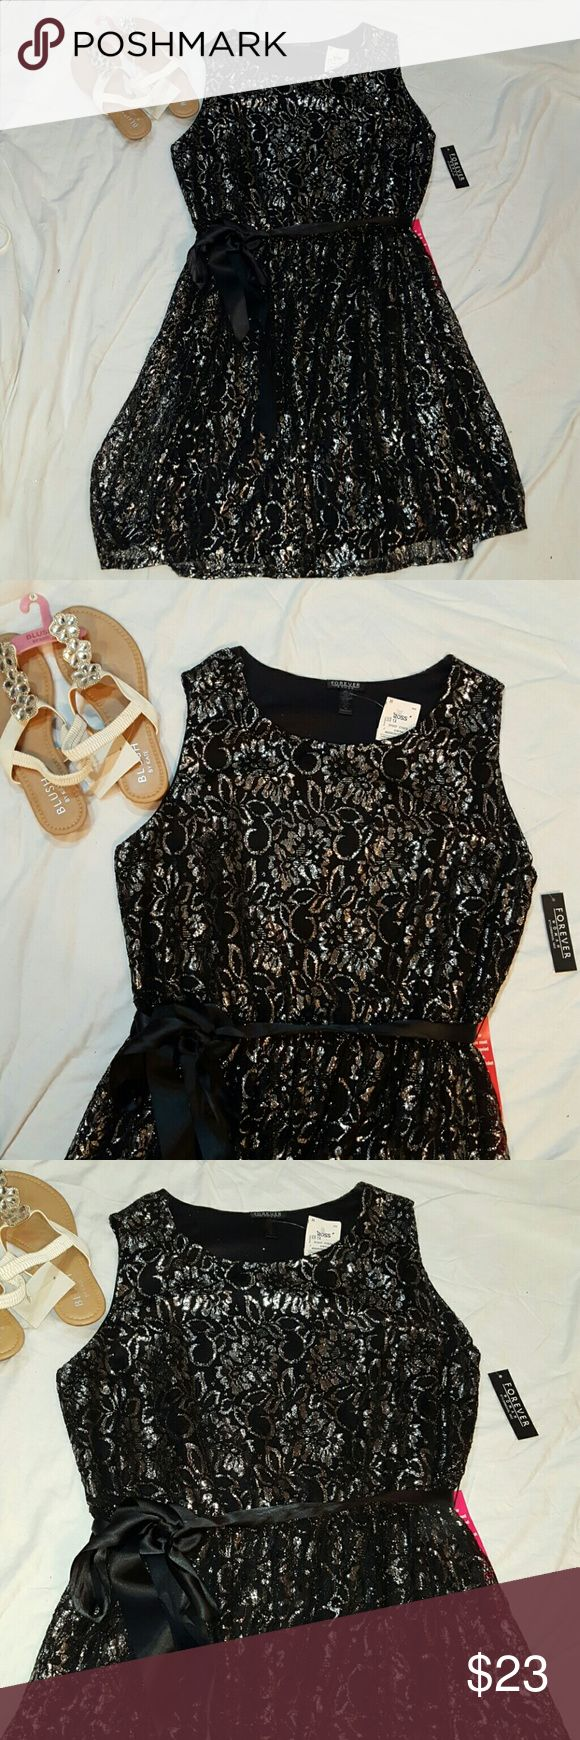 Black and silver summer dress Stunning Brand new tags attached Size 1x Beautiful sleeveless dress. Satin black belt forever women Dresses